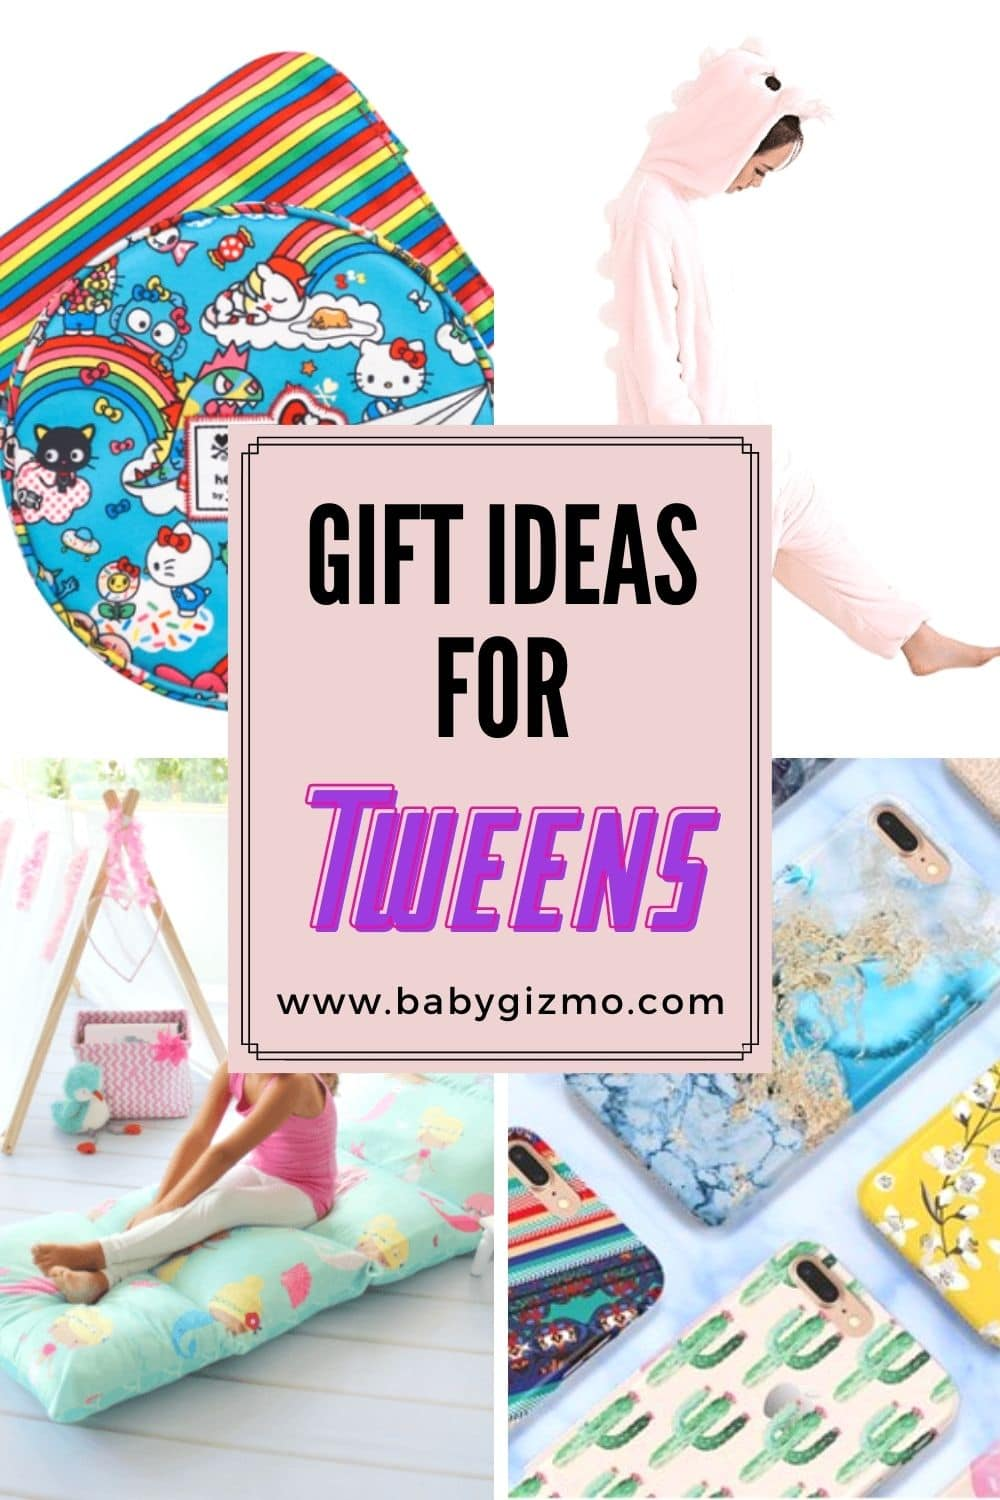 a variety of gift ideas for tweens